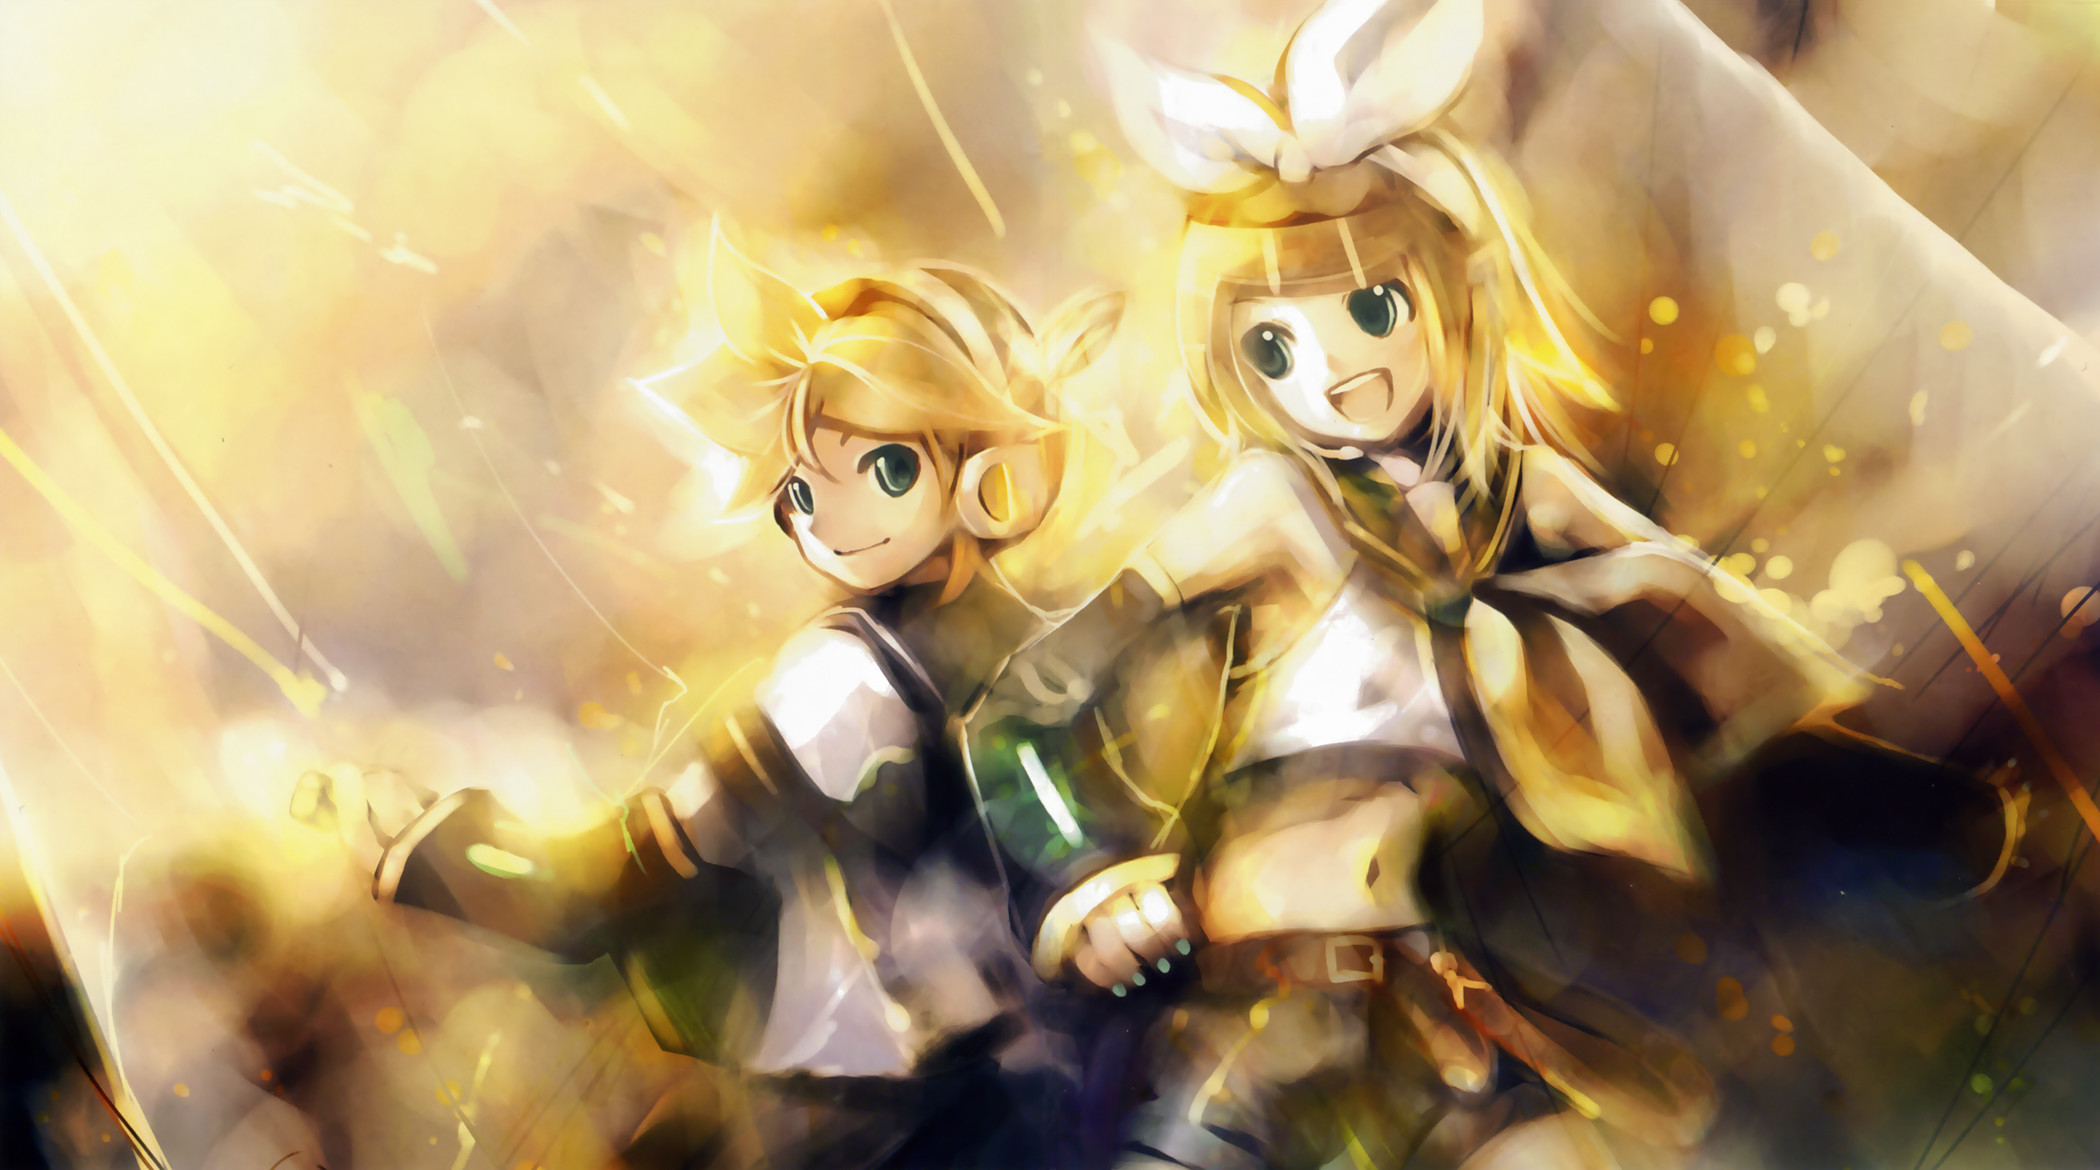 Res: 2100x1170, nejiten2 images Kagamine len and rin HD wallpaper and background photos